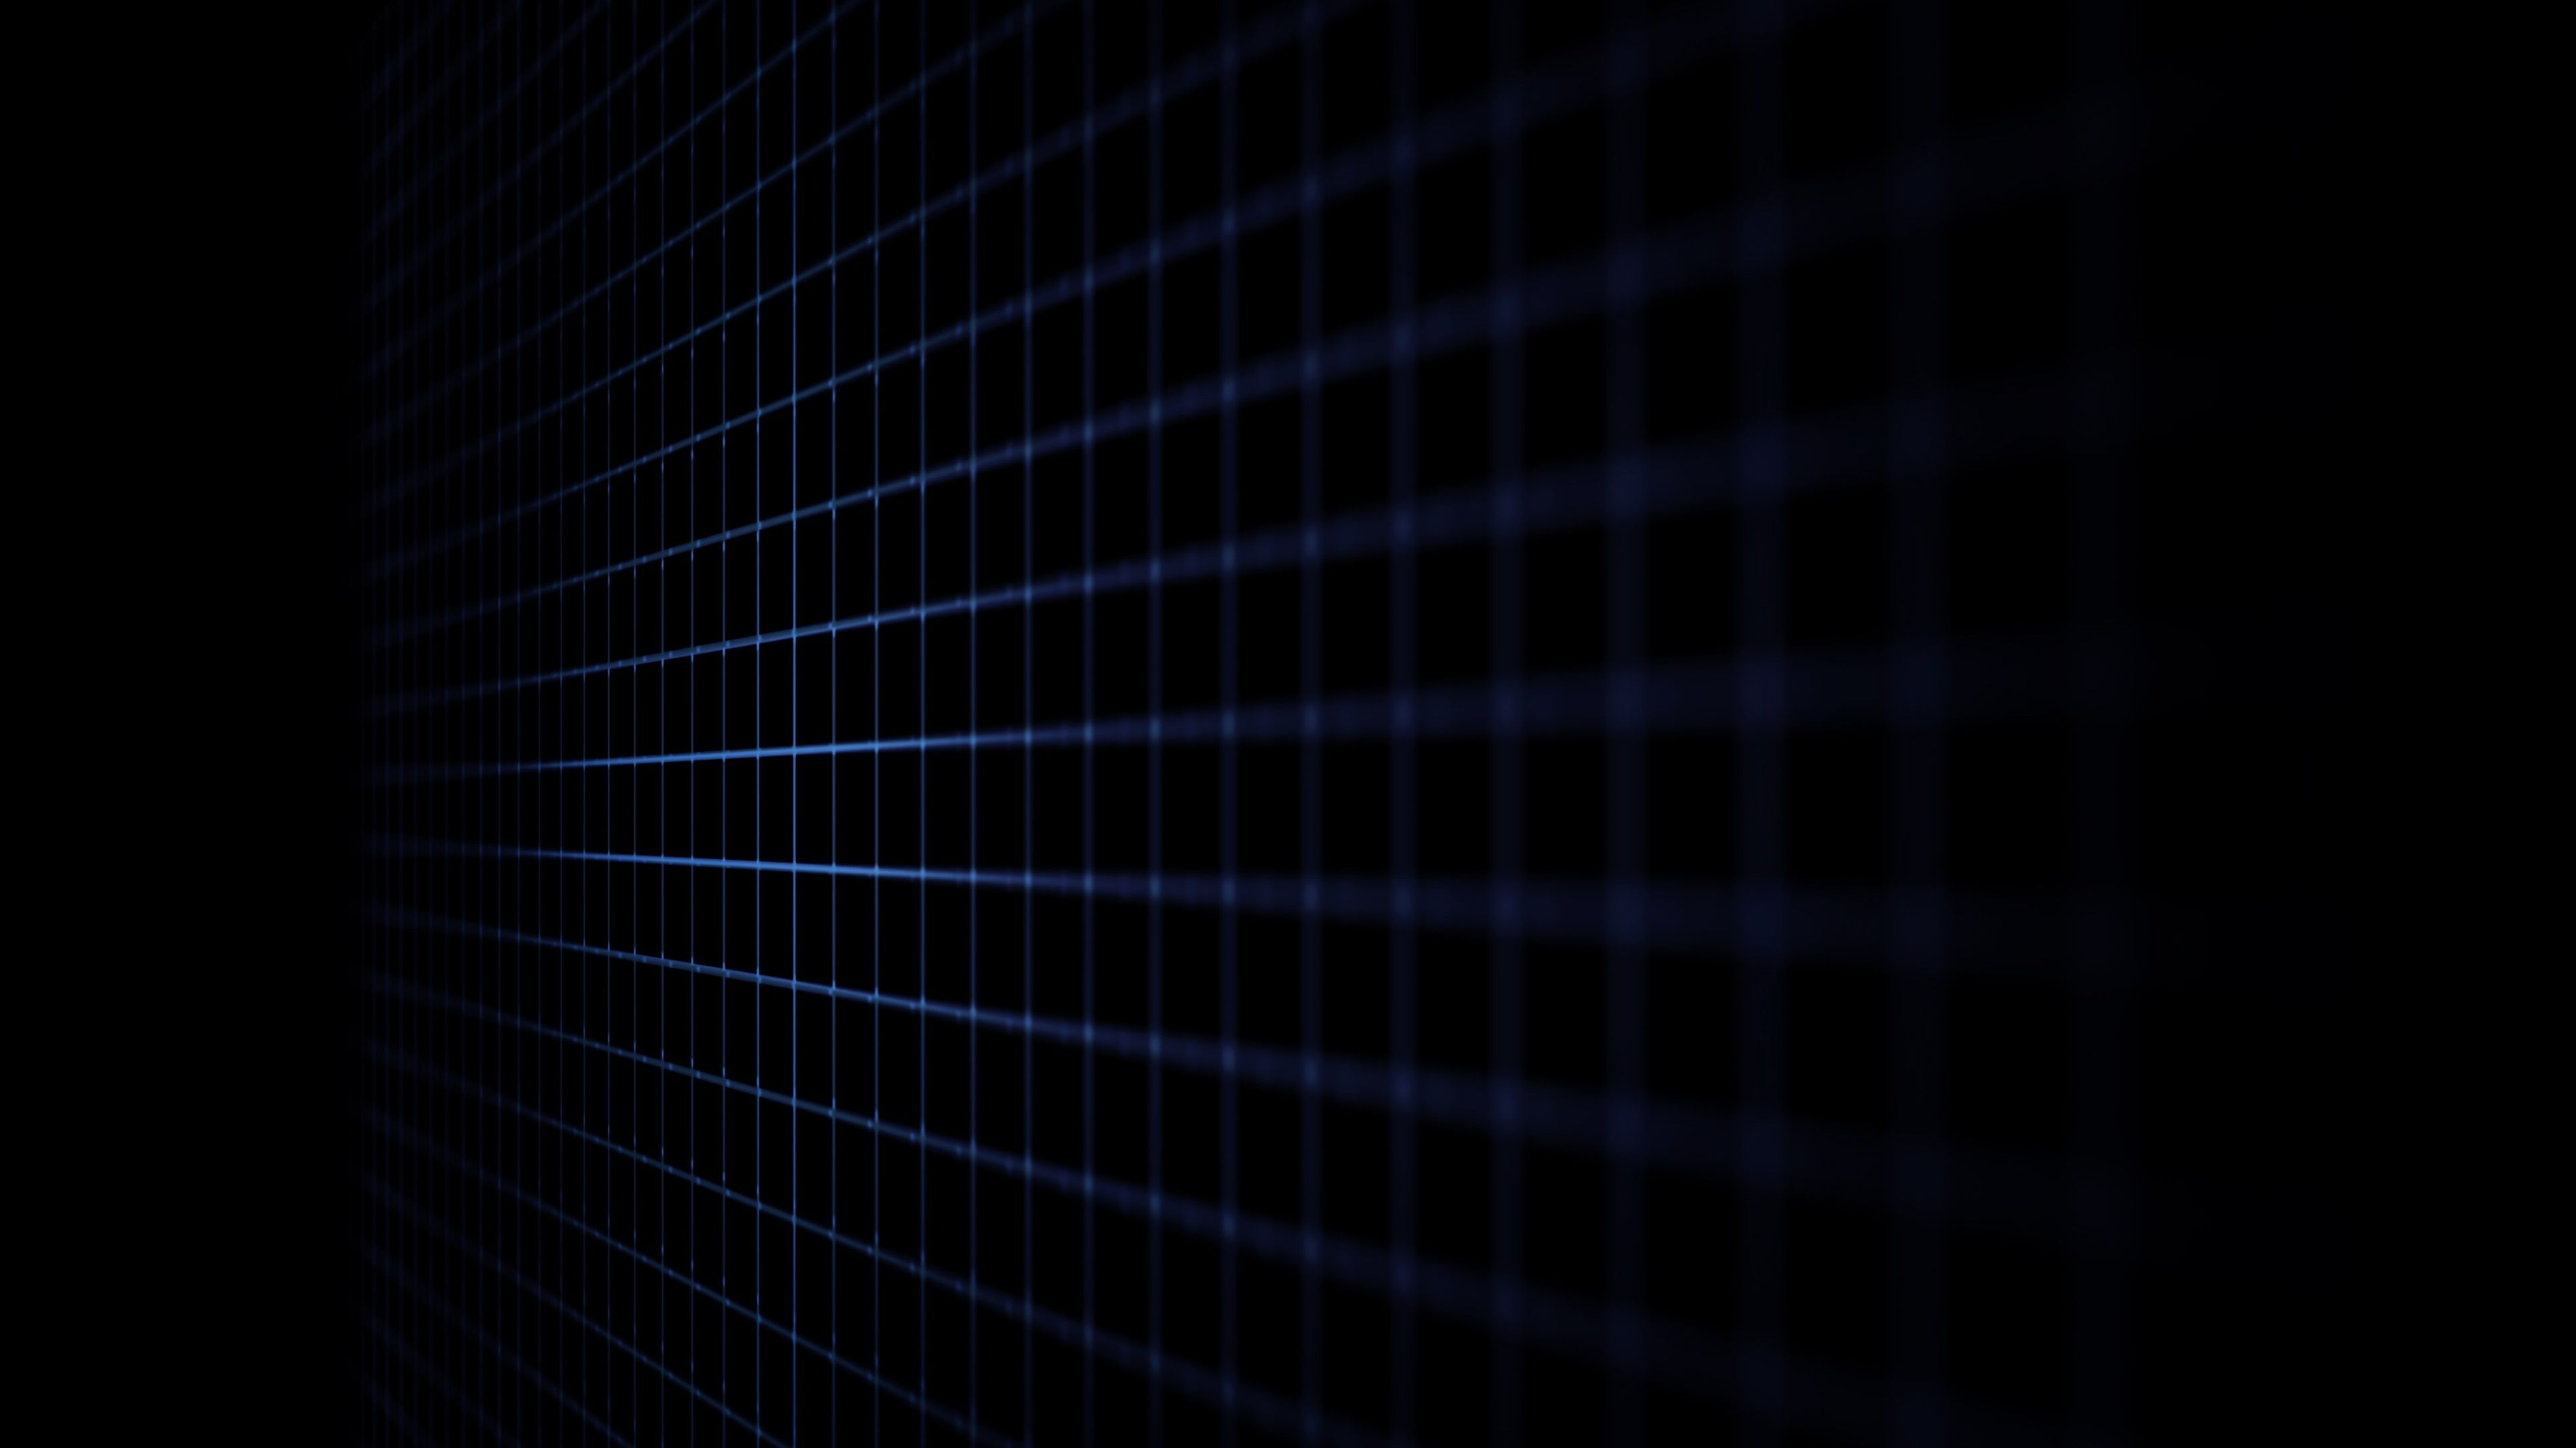 3840x2159 grid lines 4k wallpaper in hd quality Cool